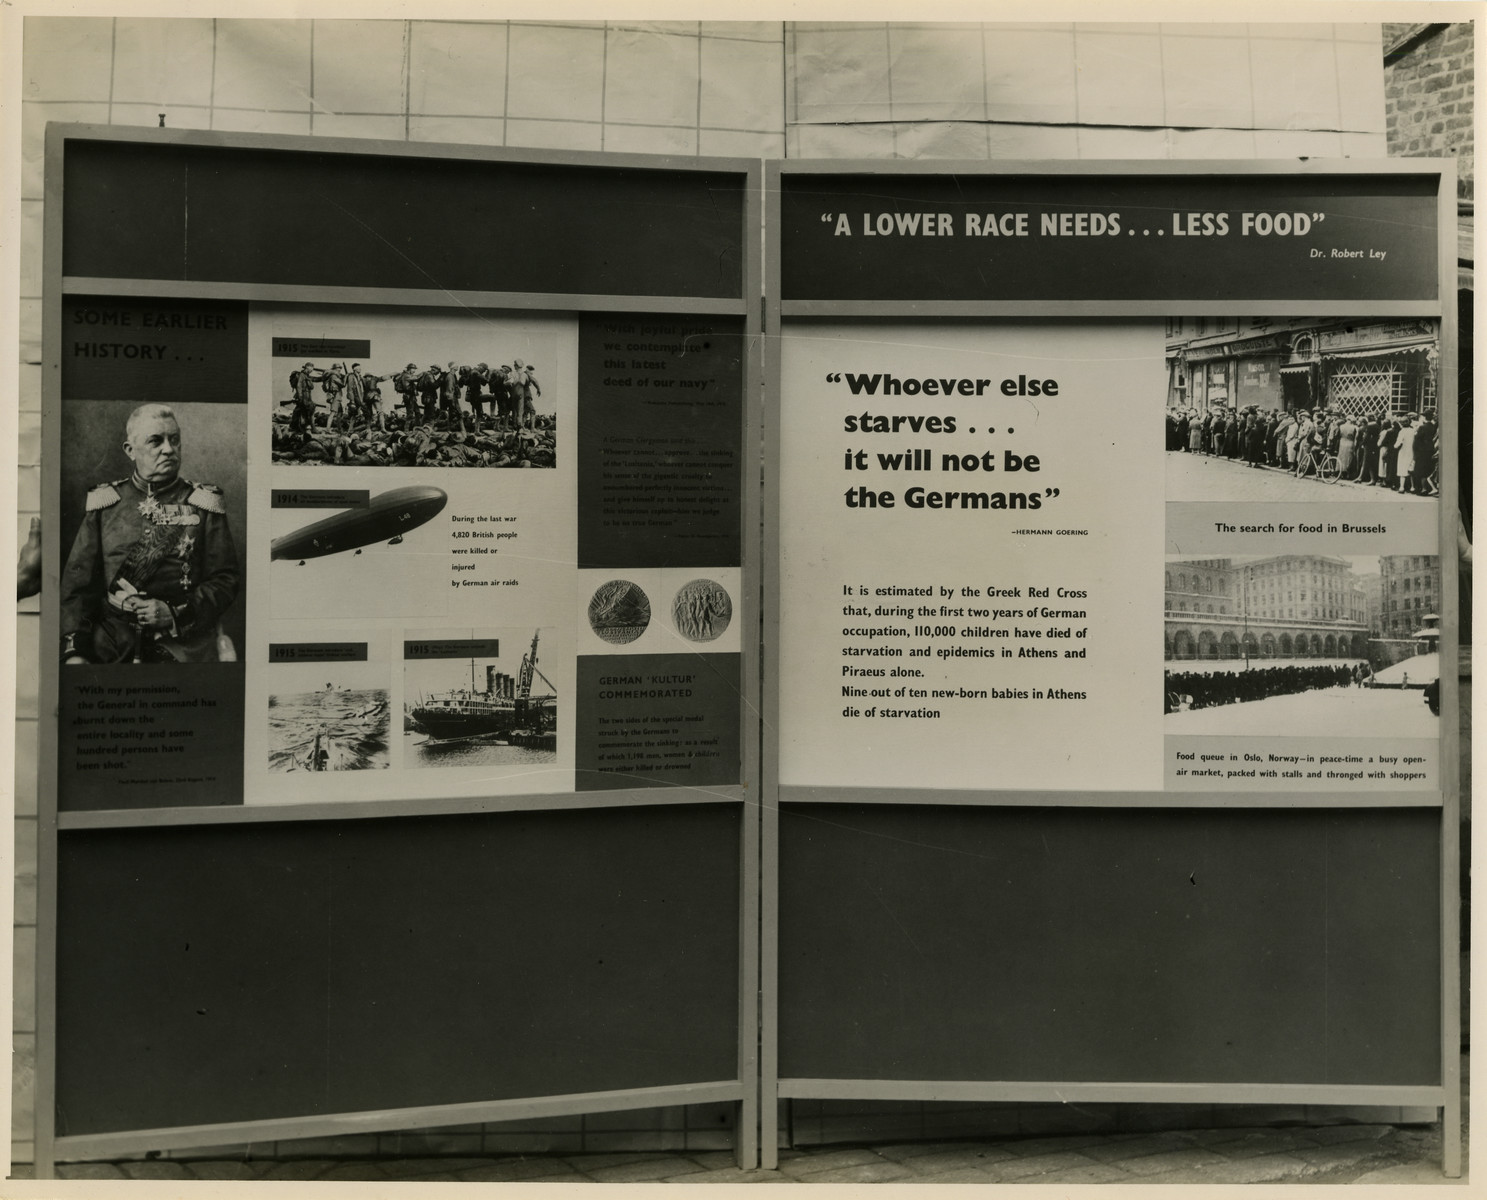 "Panel from a 1944 exhibition in London, England, entitled ""Germany- the Evidence.""  The left panel explains earlier Germany history to provide background information leading up to World War II.   The right panel is titled ""'A Lower Race Needs... Less Food' Dr. Robert Lay.""  ""'Whoever else starves... it will not be the Germans' Hermann Goering""  ""It is estimated by the Greek Red Cross that, during the first two years of German occupation, 110,000 children have died of starvation and epidemics in Athens and Piraeus alone. nine out of ten new-born babies in Athens die of starvation.""   Pictures are shown of people standing in food lines in Brussels and Norway.   The back of the photo reads ""British Official Photograph; Distrbuted by the Ministry of Information. D. ; The Evil We Fight.; Ministry of Information Exhibition priduced by Display & Exhibitions Division for show all over Great Britain.; Display panel"""